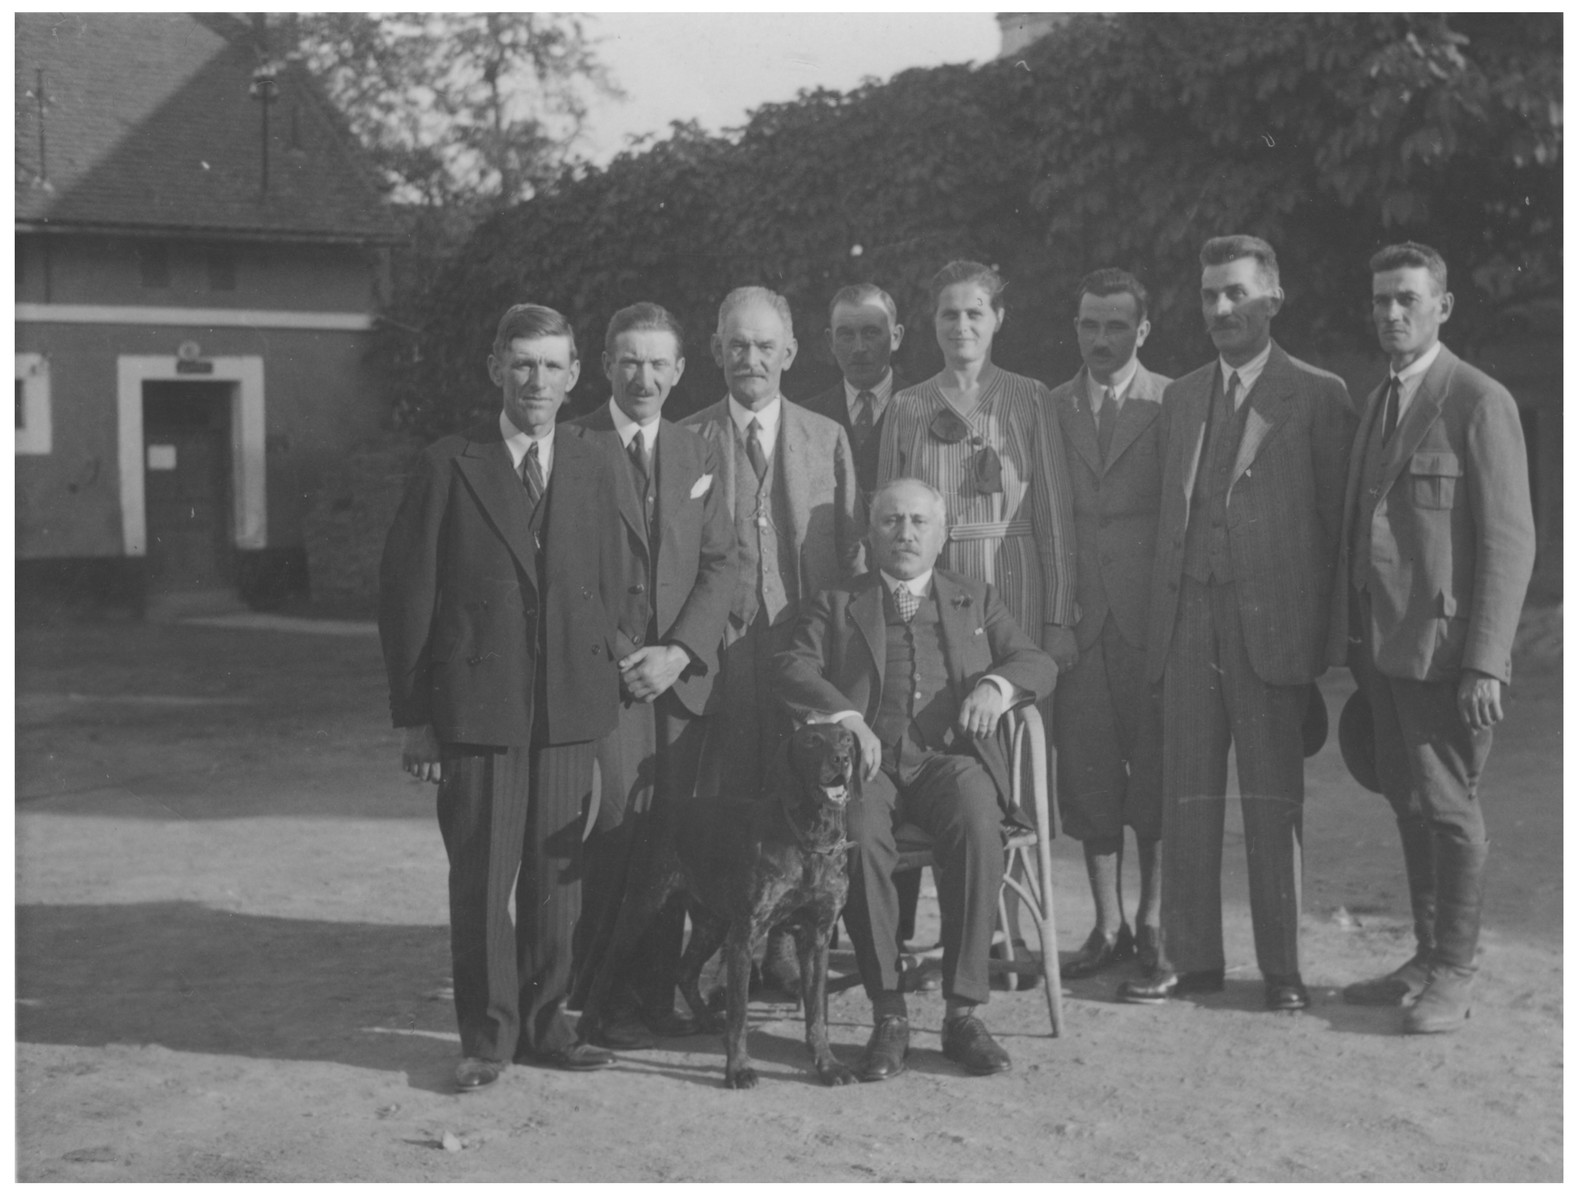 Julius Kraus poses with the employees of his farm.  His estate later became the site of the Lipa farm labor camp.  Karel Kraus is pictured second from the left.